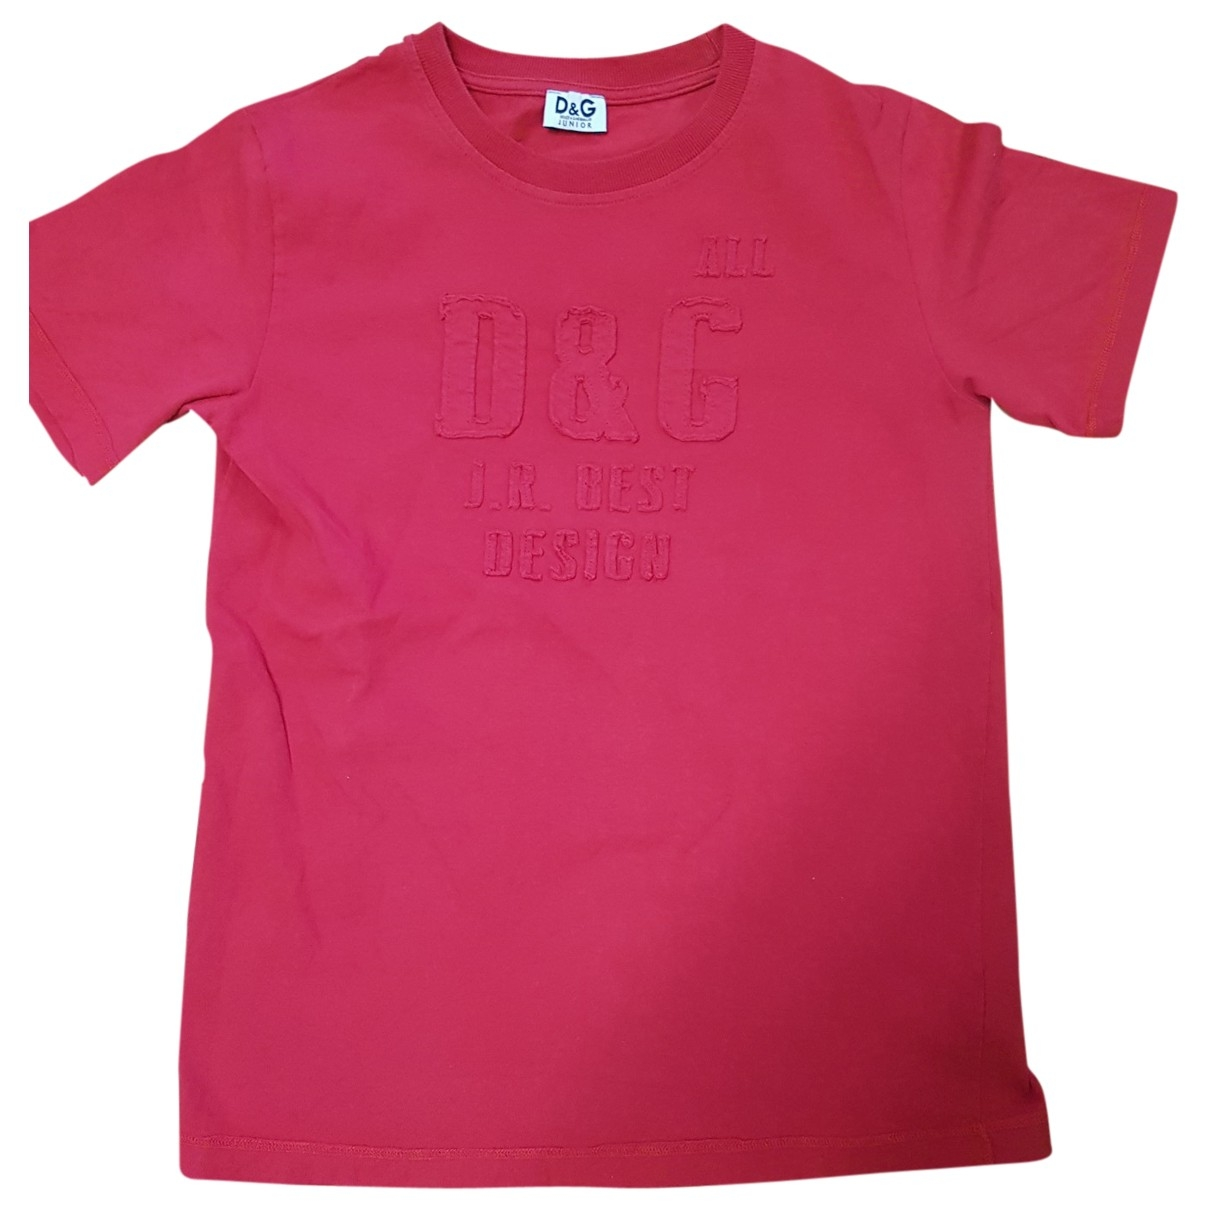 D&g \N Red Cotton  top for Kids 10 years - up to 142cm FR